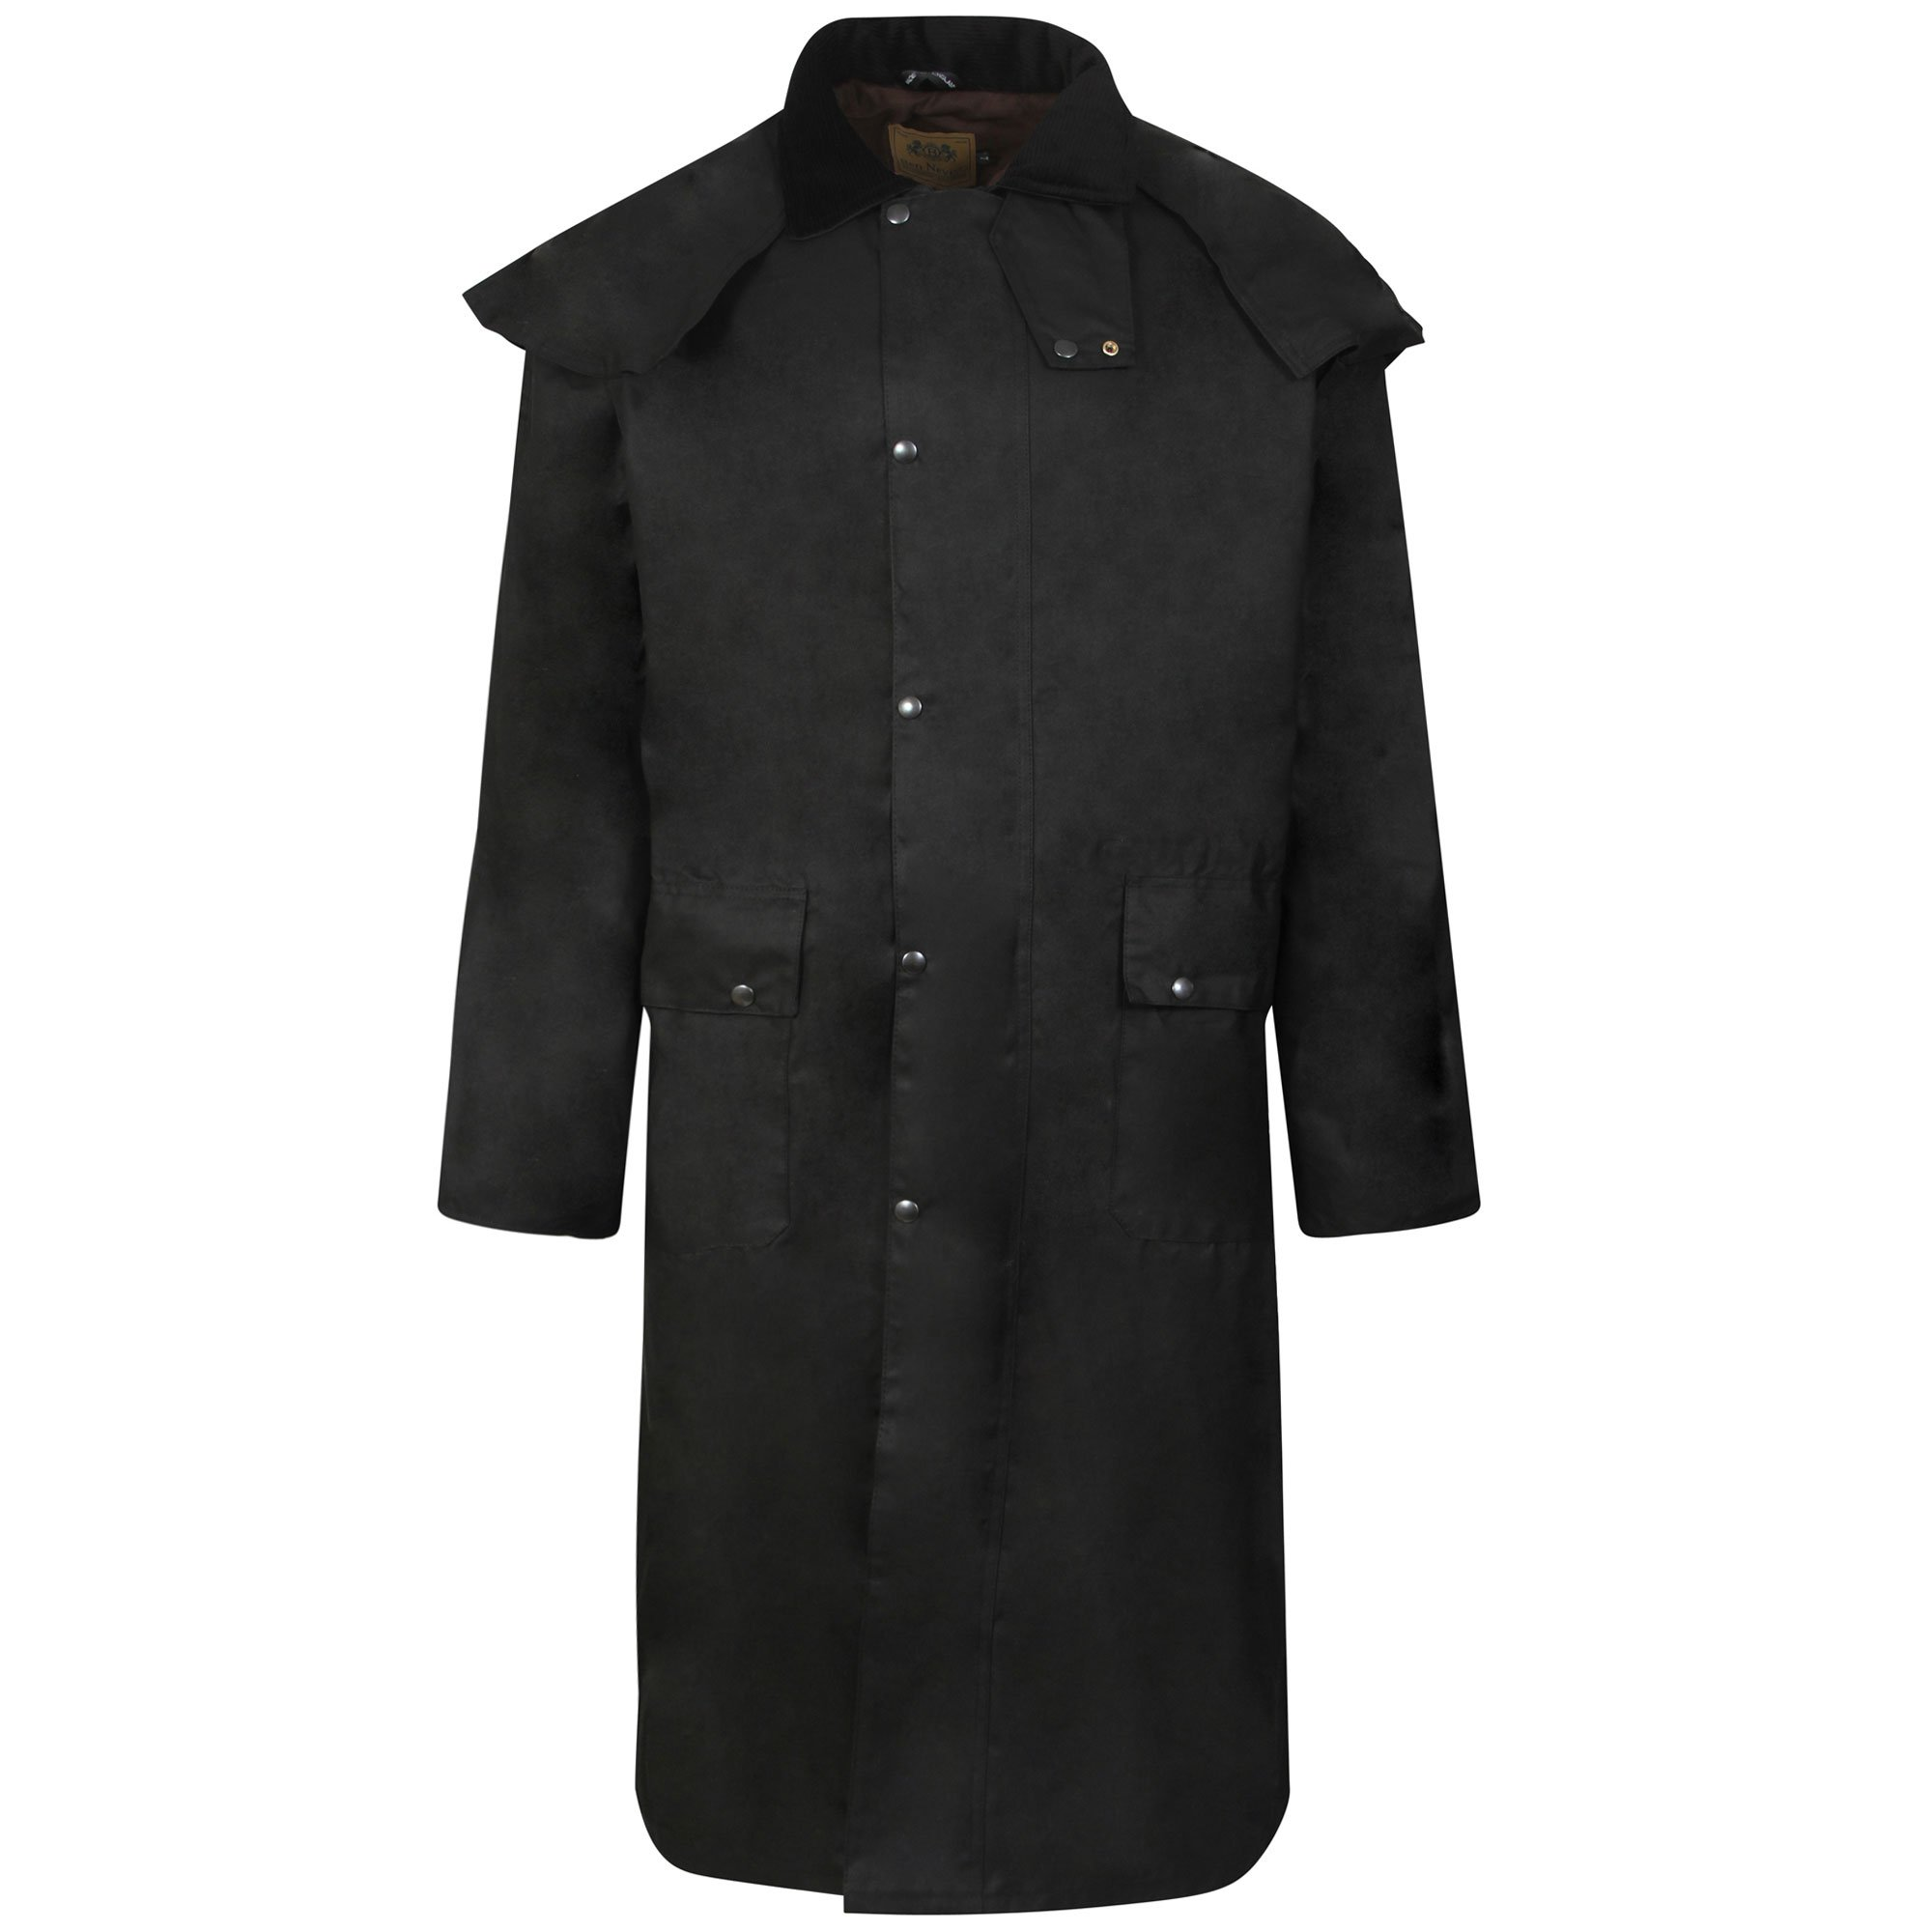 Fenside Country Clothing Long Wax Waxed Stockmans Riding Coat Jacket Unisex  Double Fold Way Waterproof product 1701eb6f0